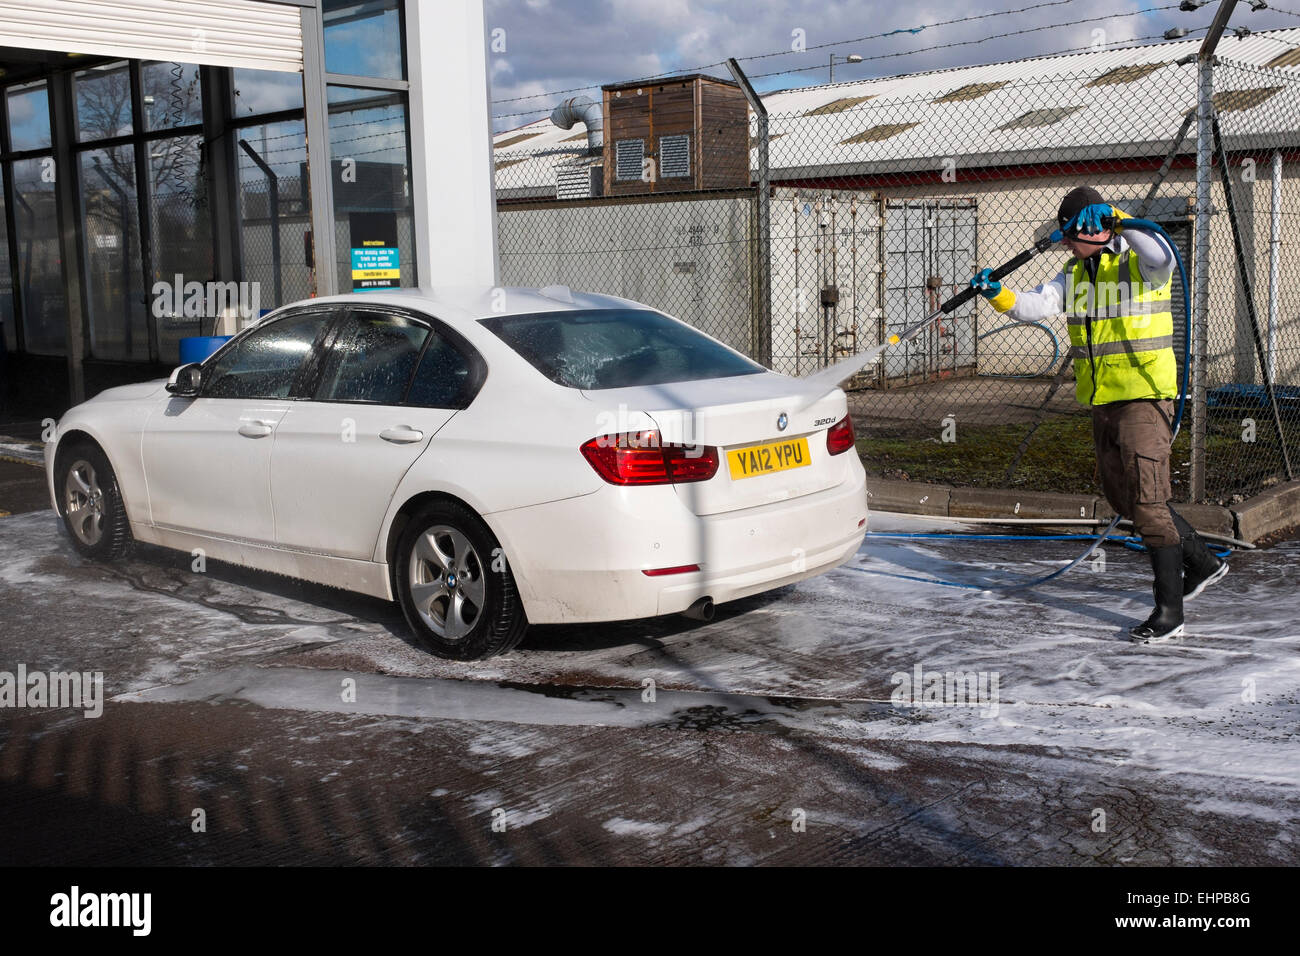 Car being washed in a modern styled car wash, using high pressure water hoses, Glasgow, Scotland, UK - Stock Image